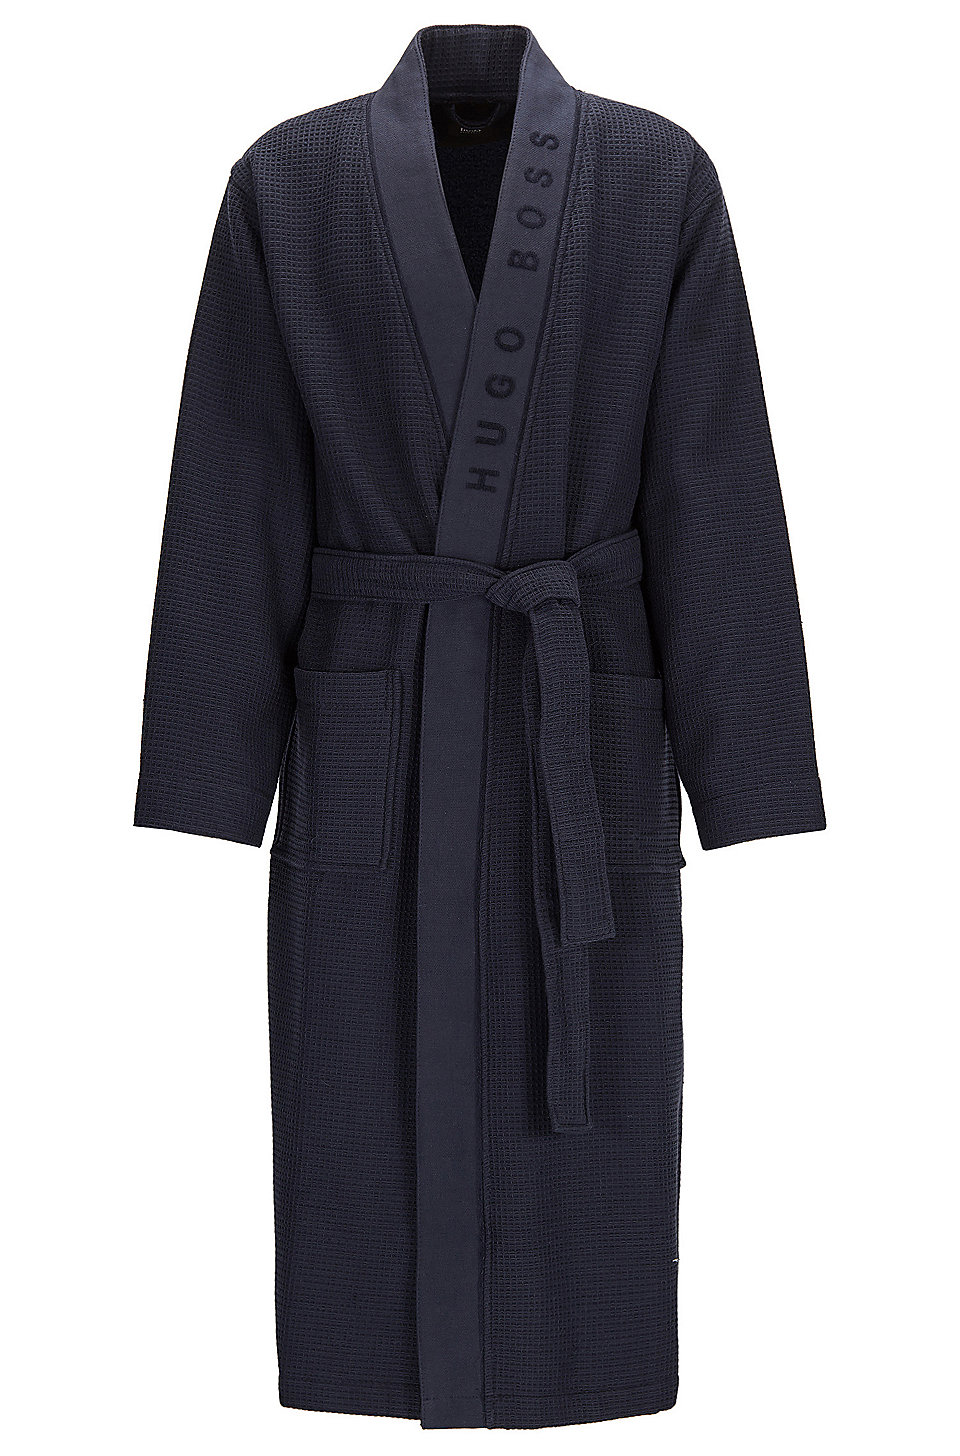 Dressing gowns for men by HUGO BOSS | High comfort